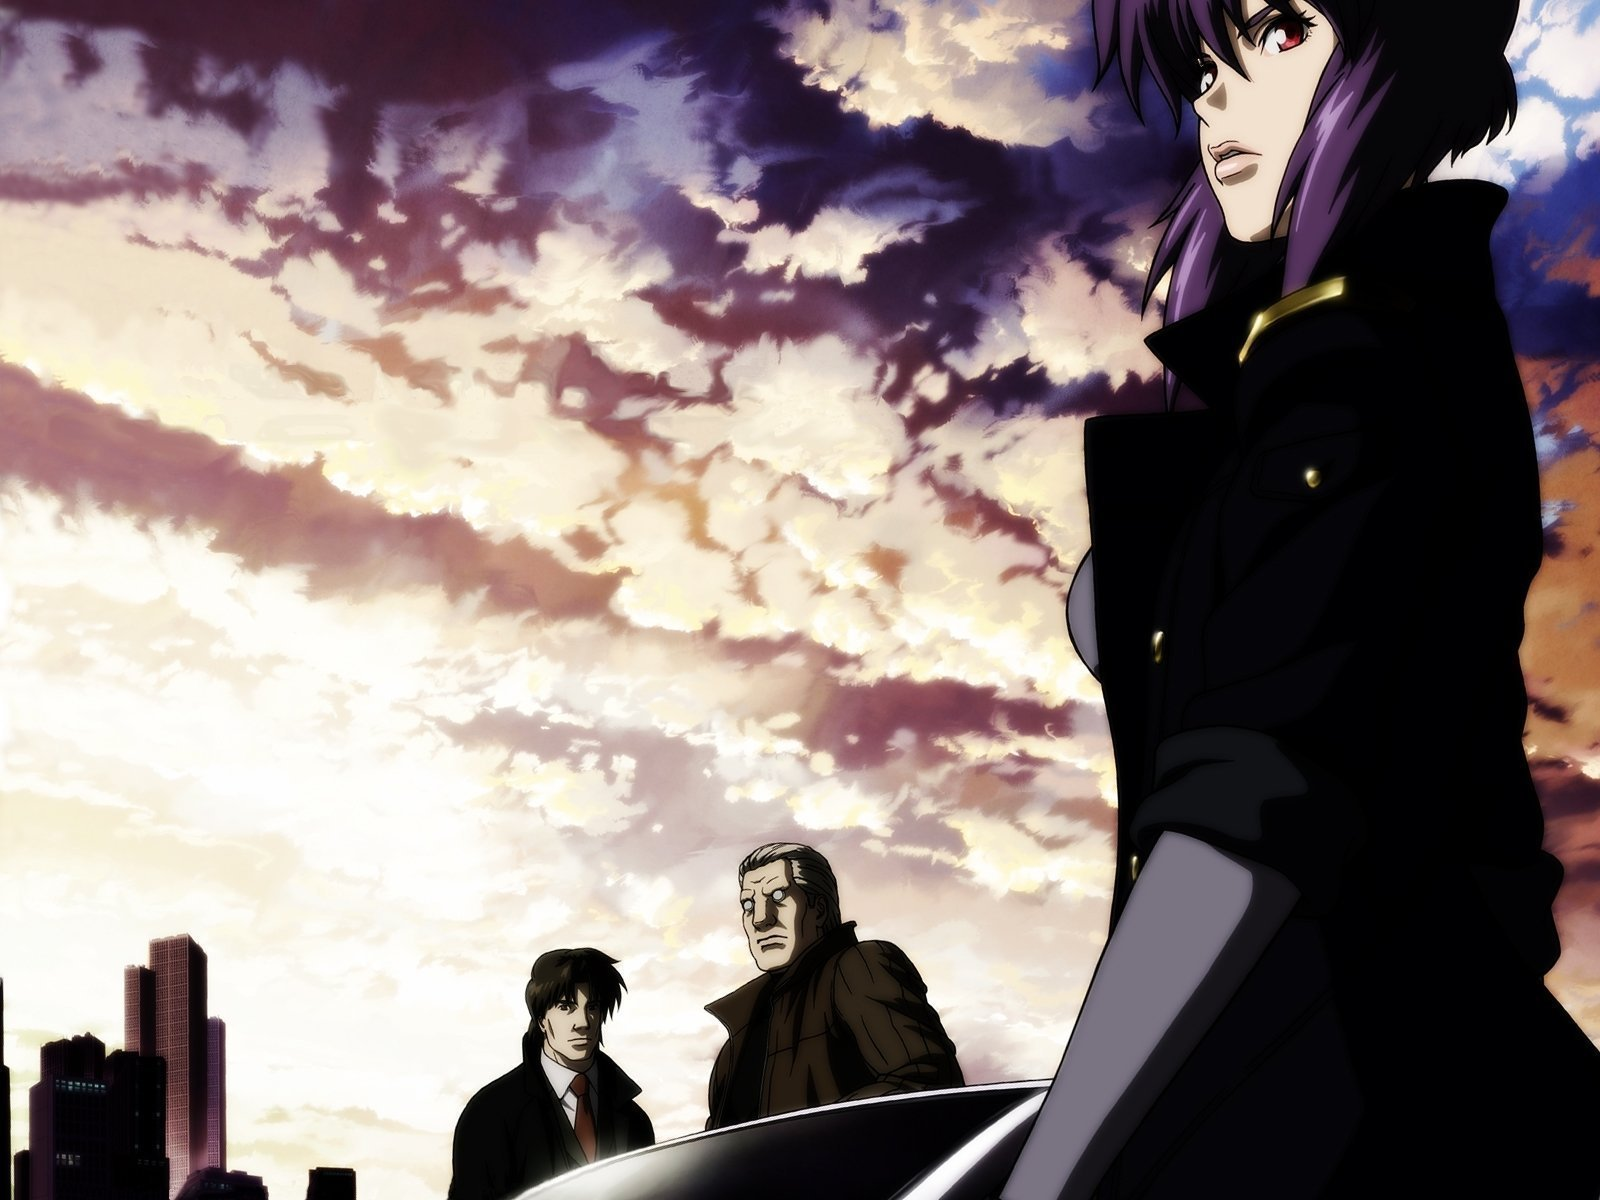 batou ghost_in_the_shell kusanagi_motoko togusa